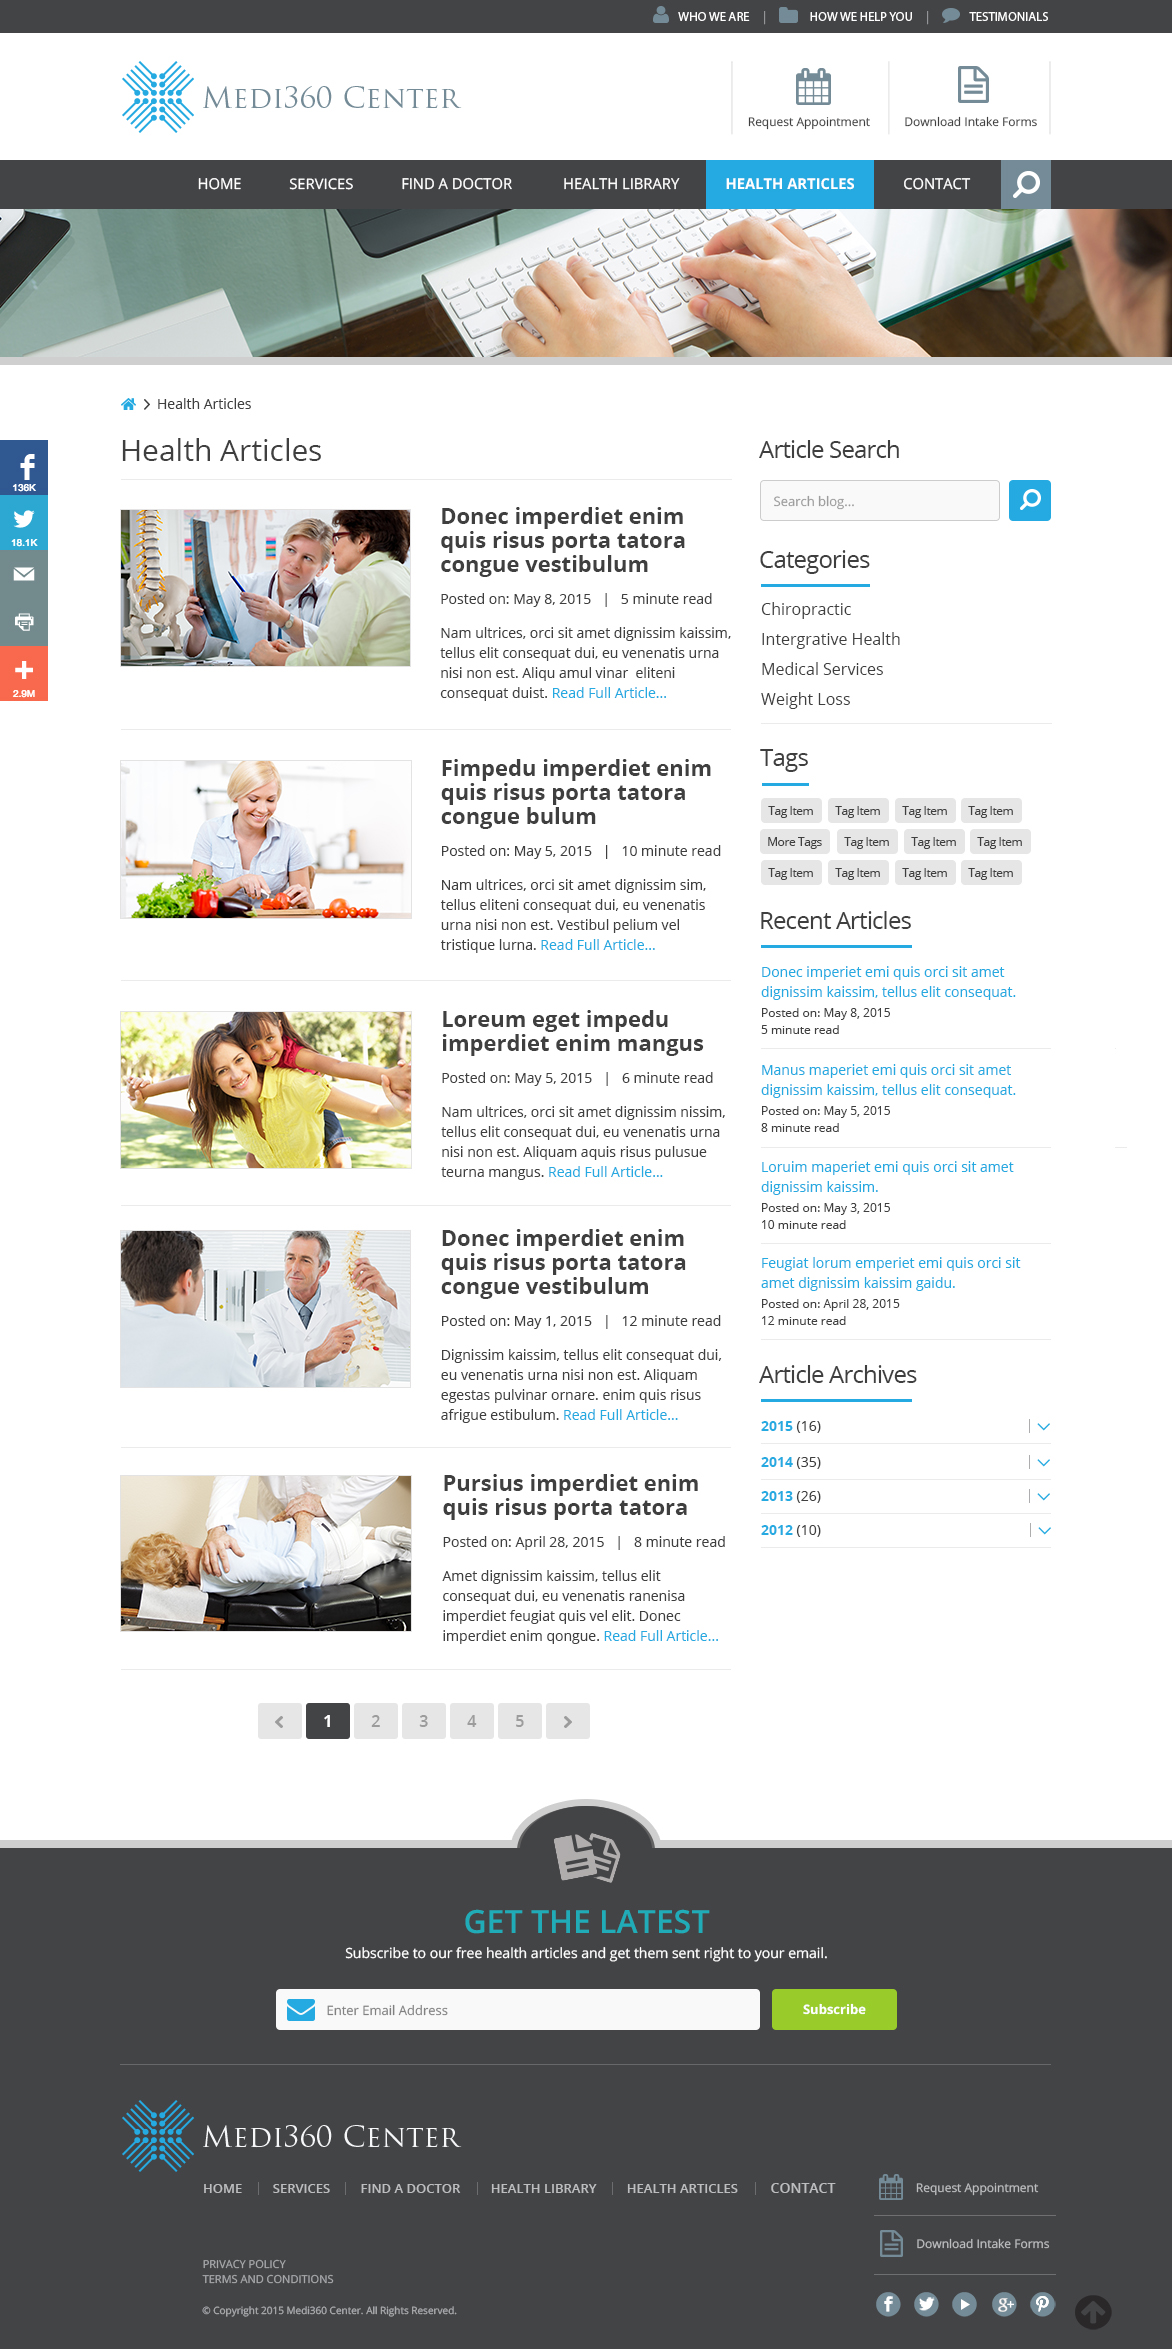 Medi360 Center Health Articles